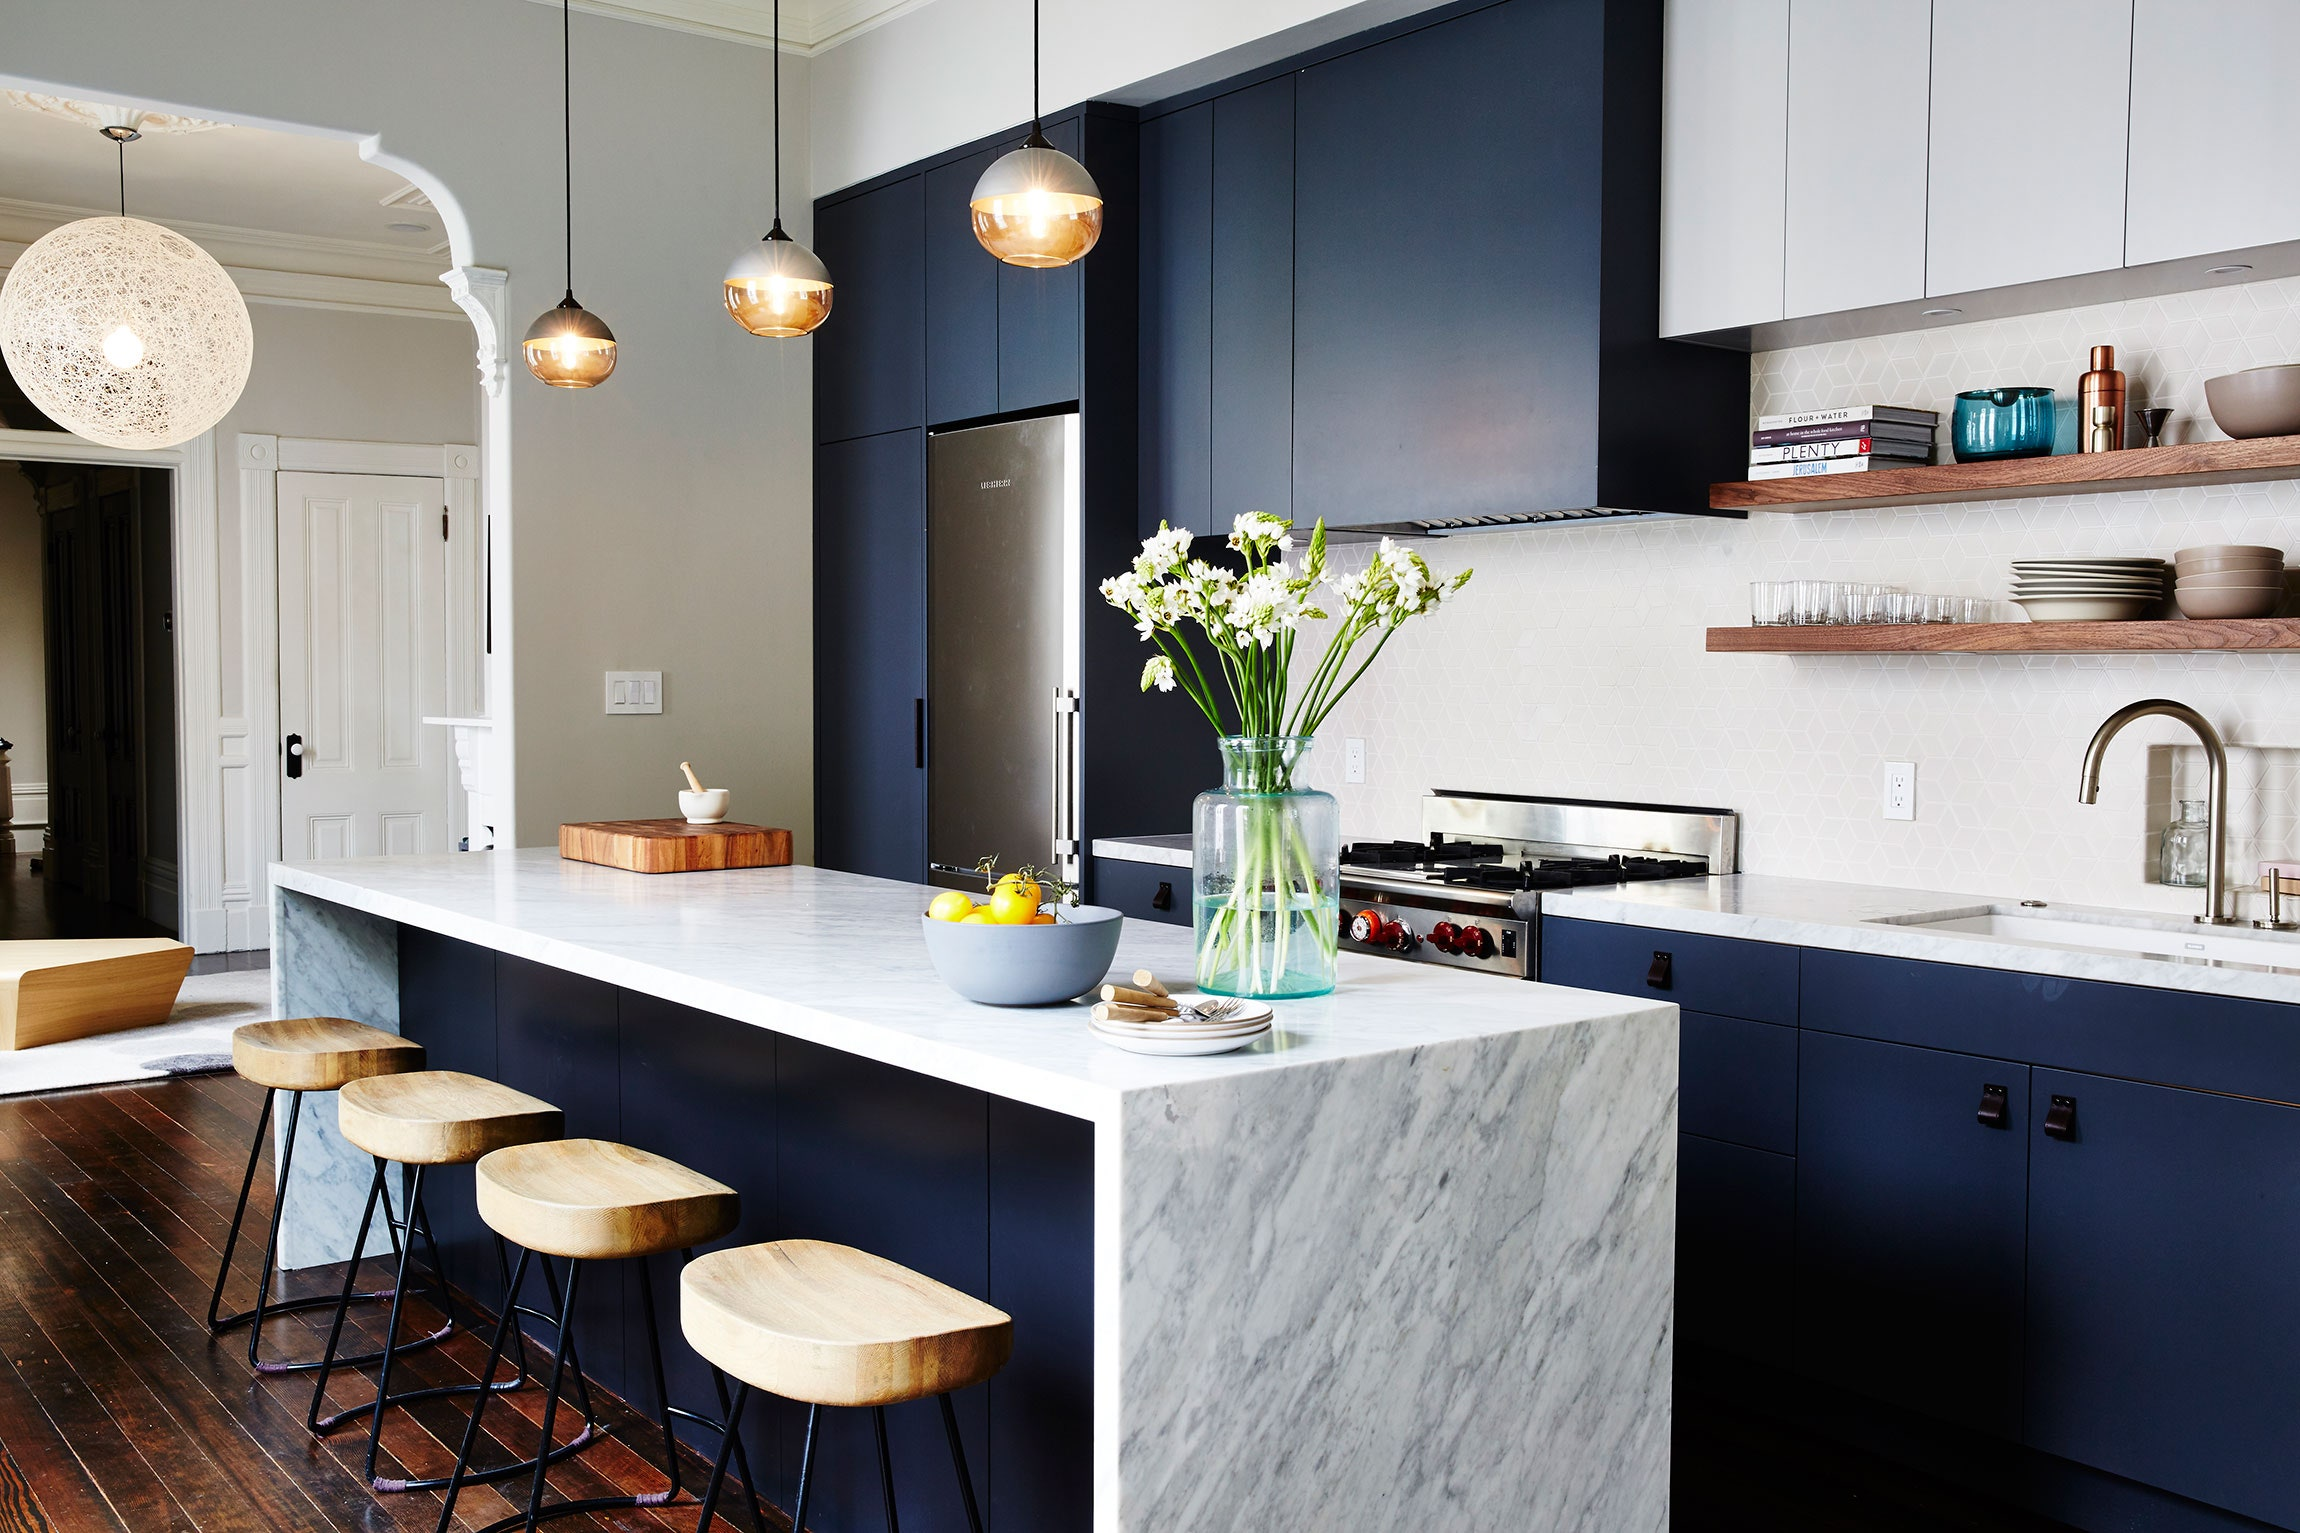 decorating-with-navy-01